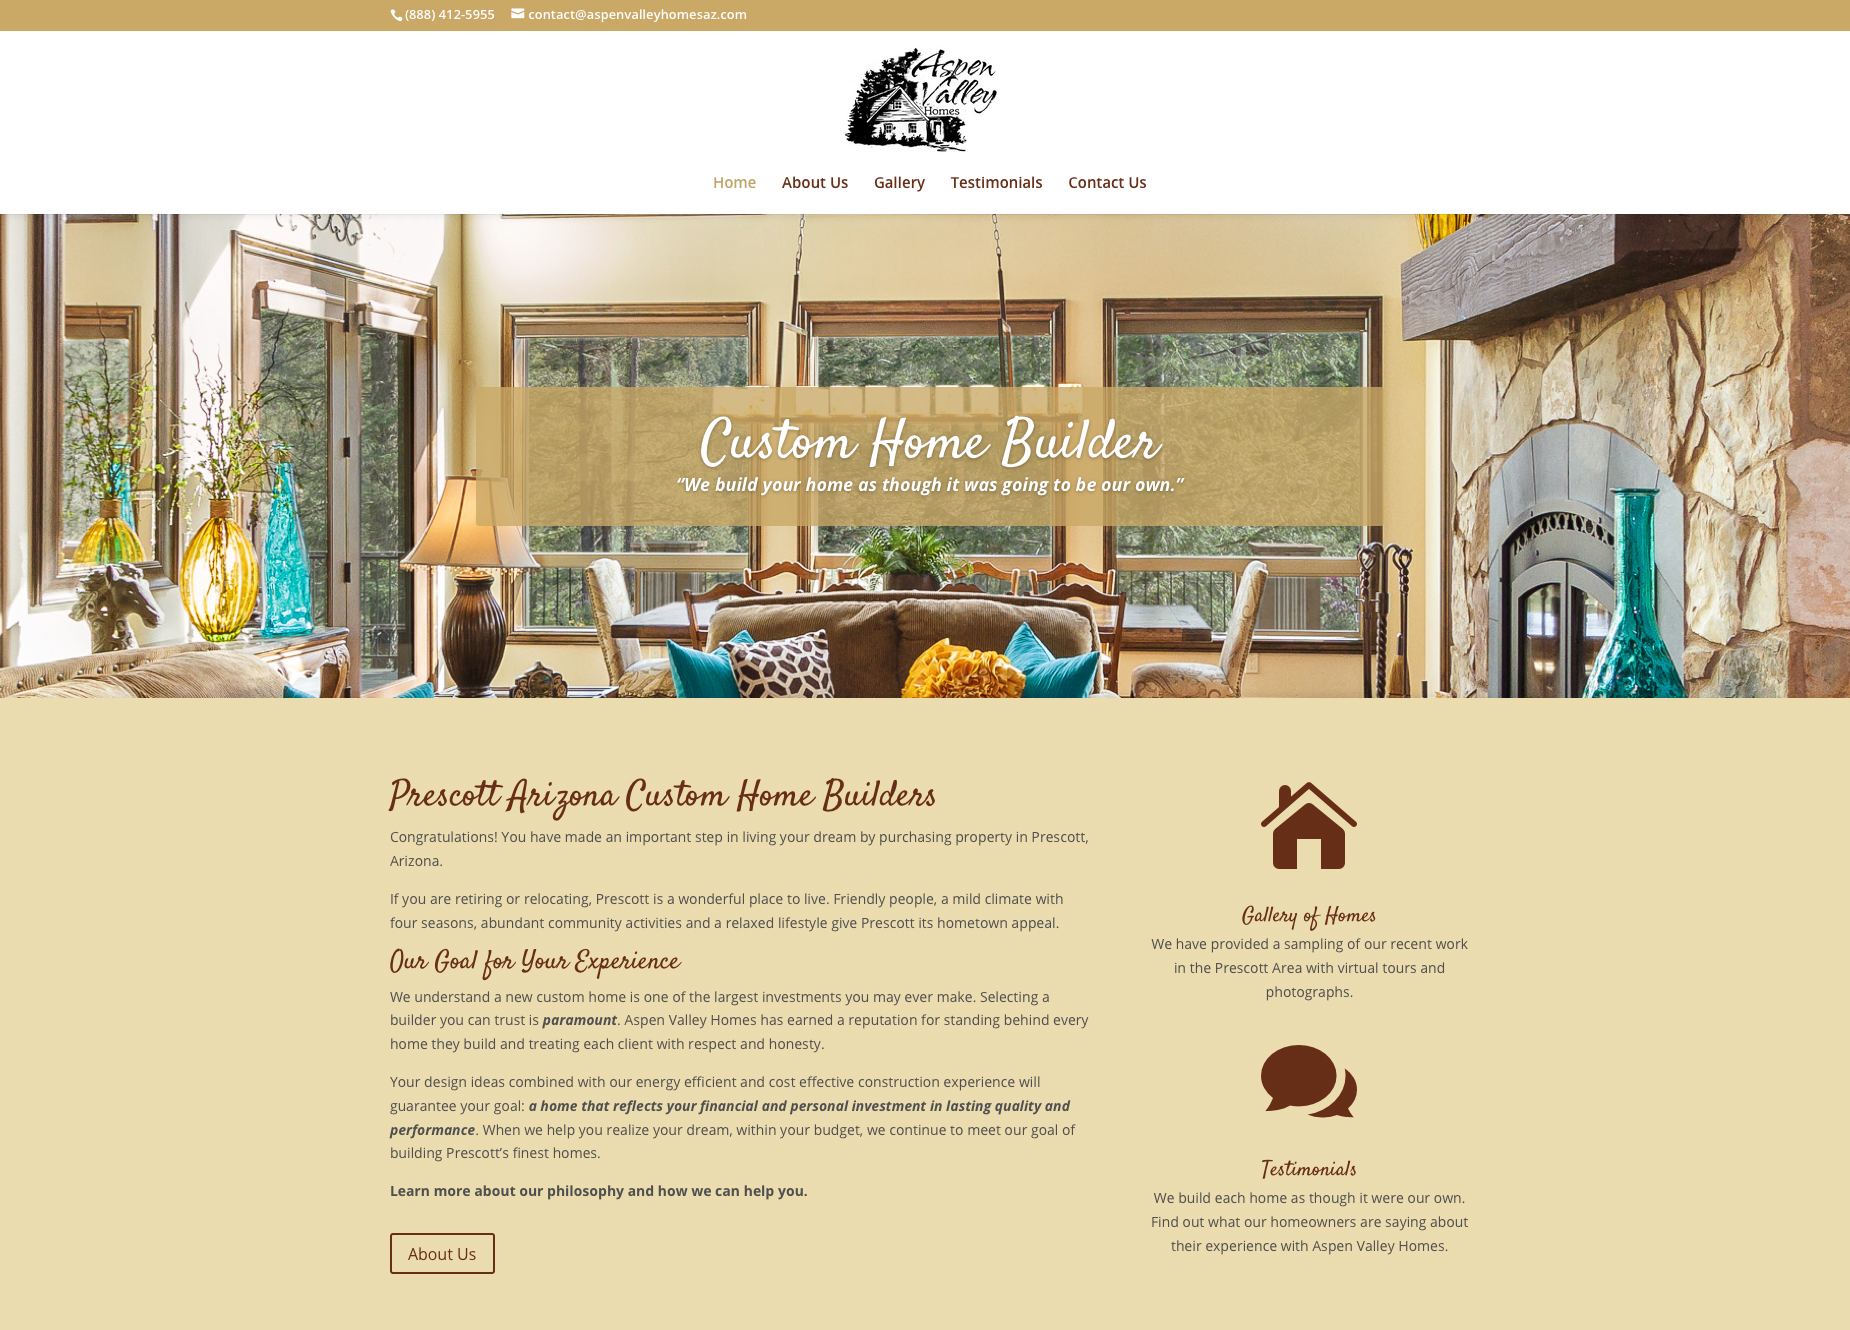 Find Custom Home Builders In Prescott Valley Arizona